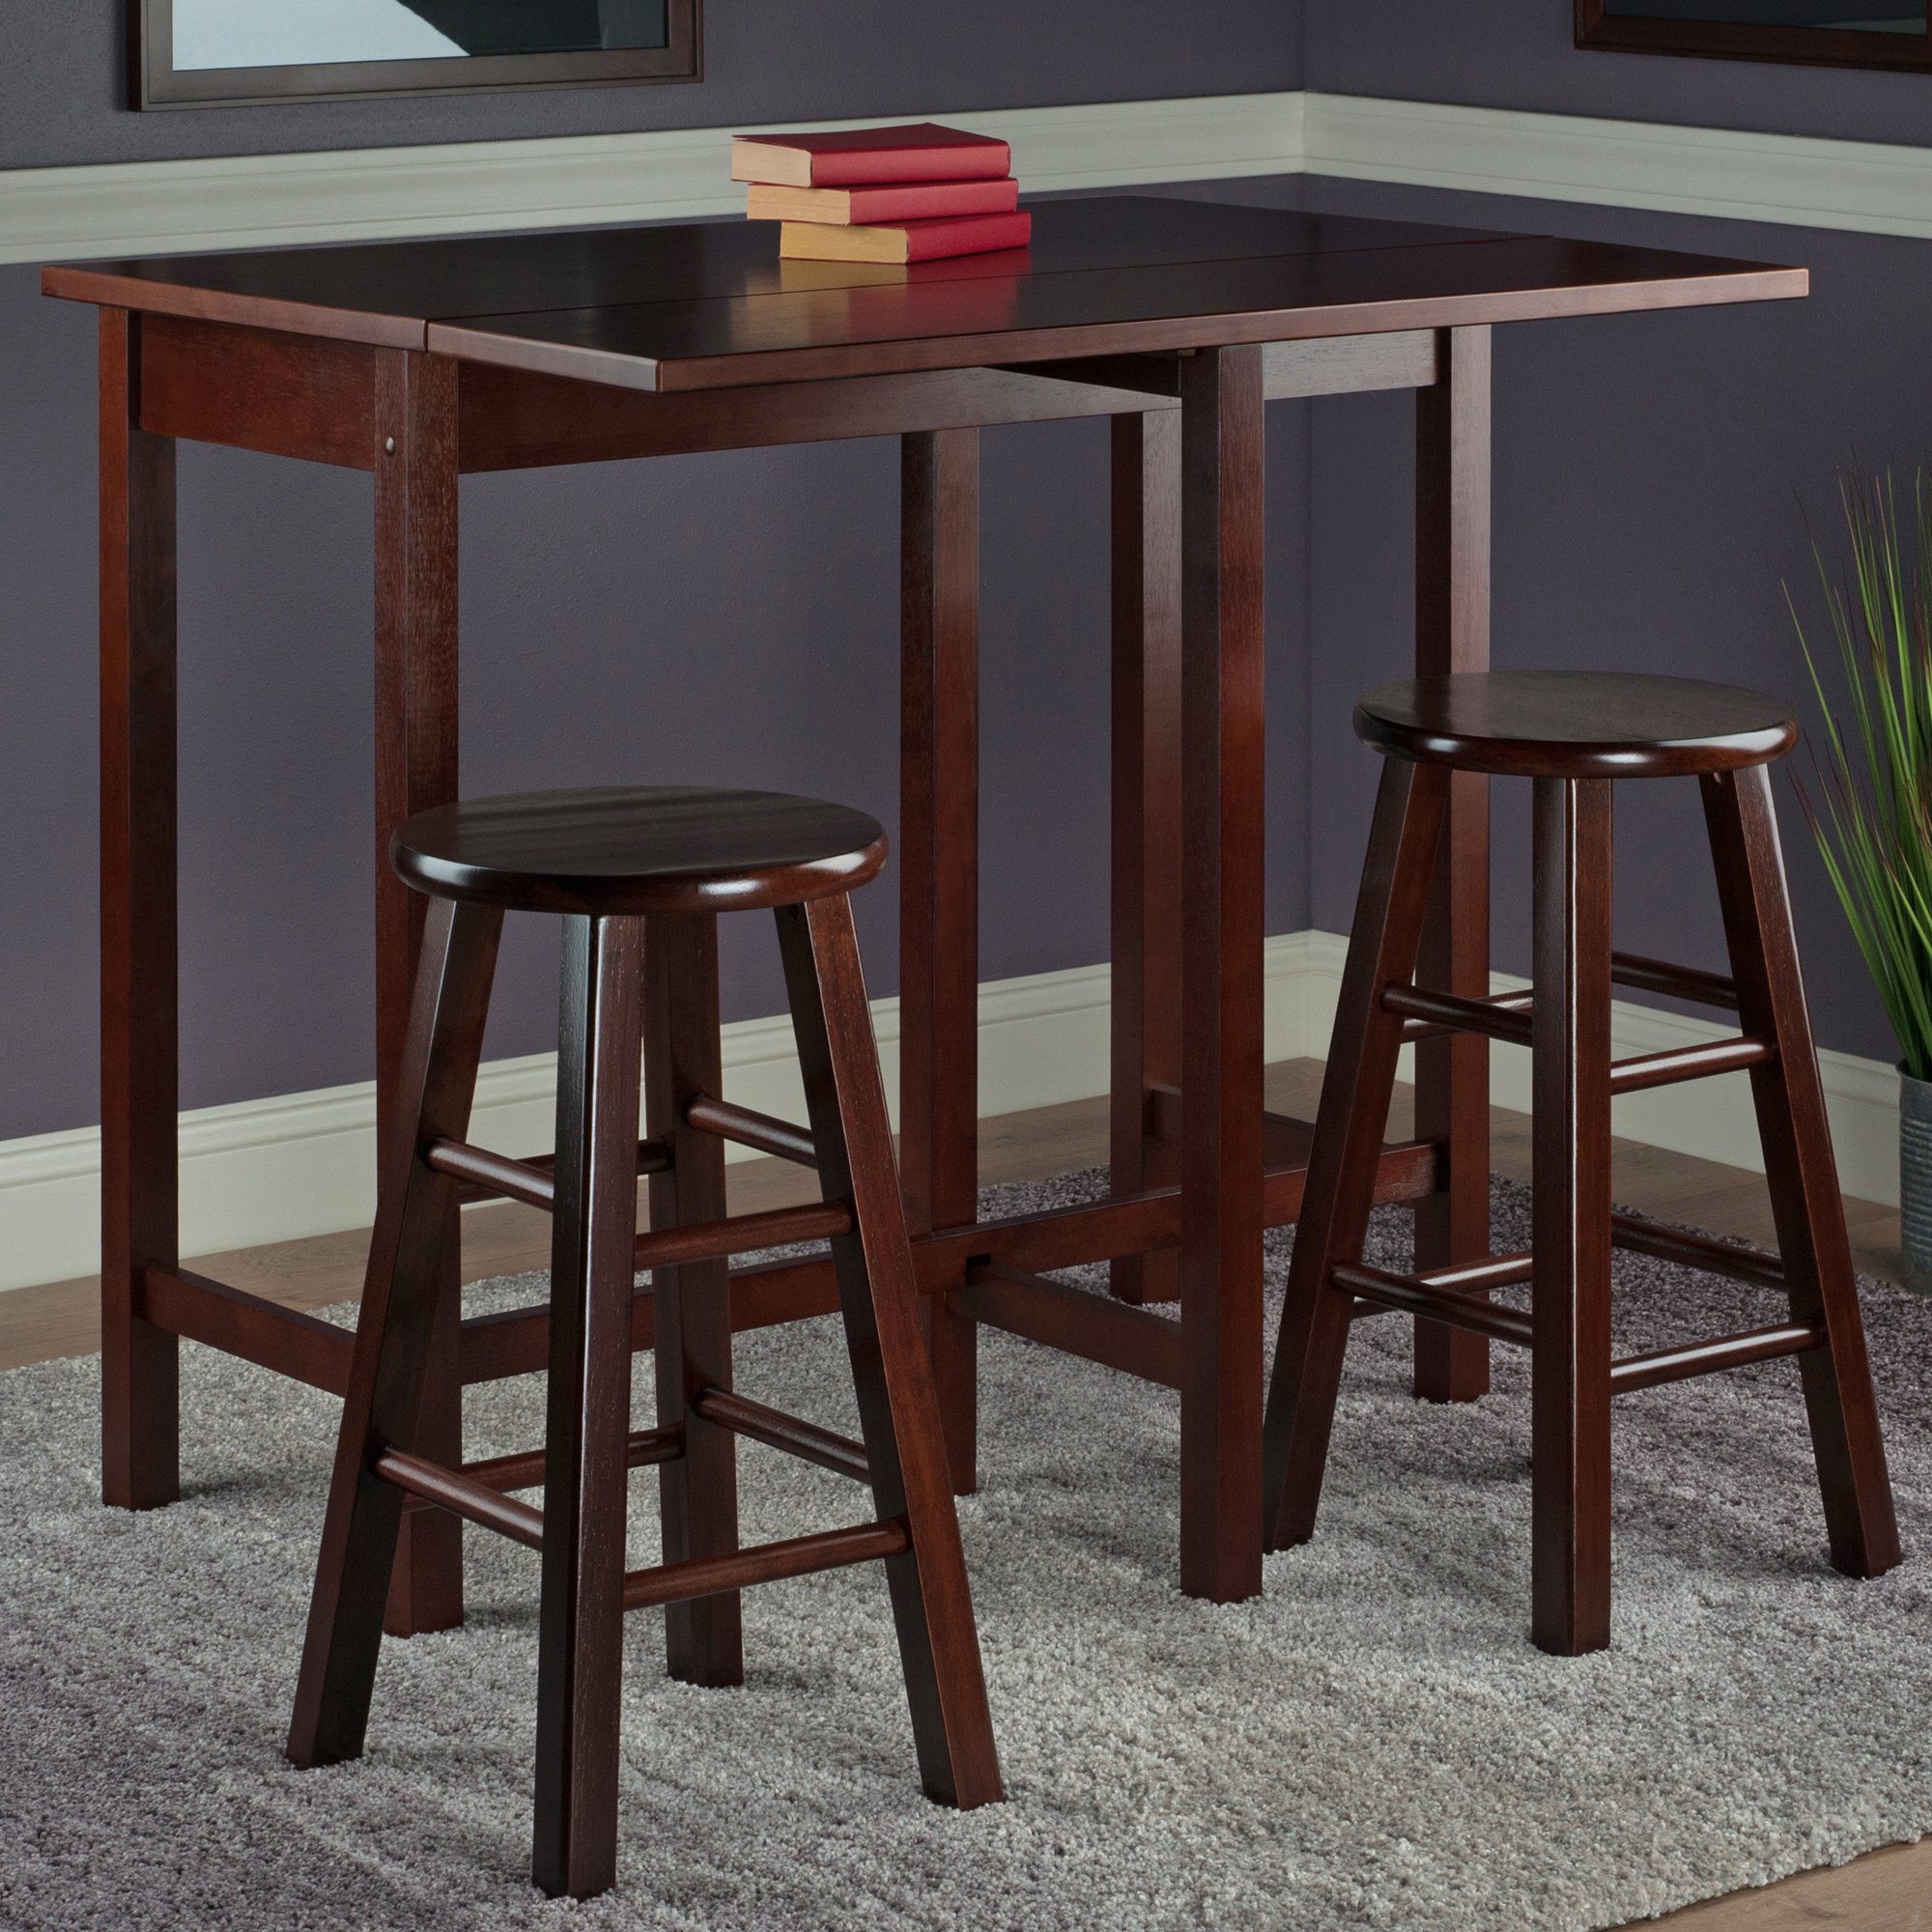 Preferred Bettencourt 3 Piece Counter Height Dining Sets Inside Red Barrel Studio Bettencourt 3 Piece Counter Height Pub Table Set (View 2 of 25)